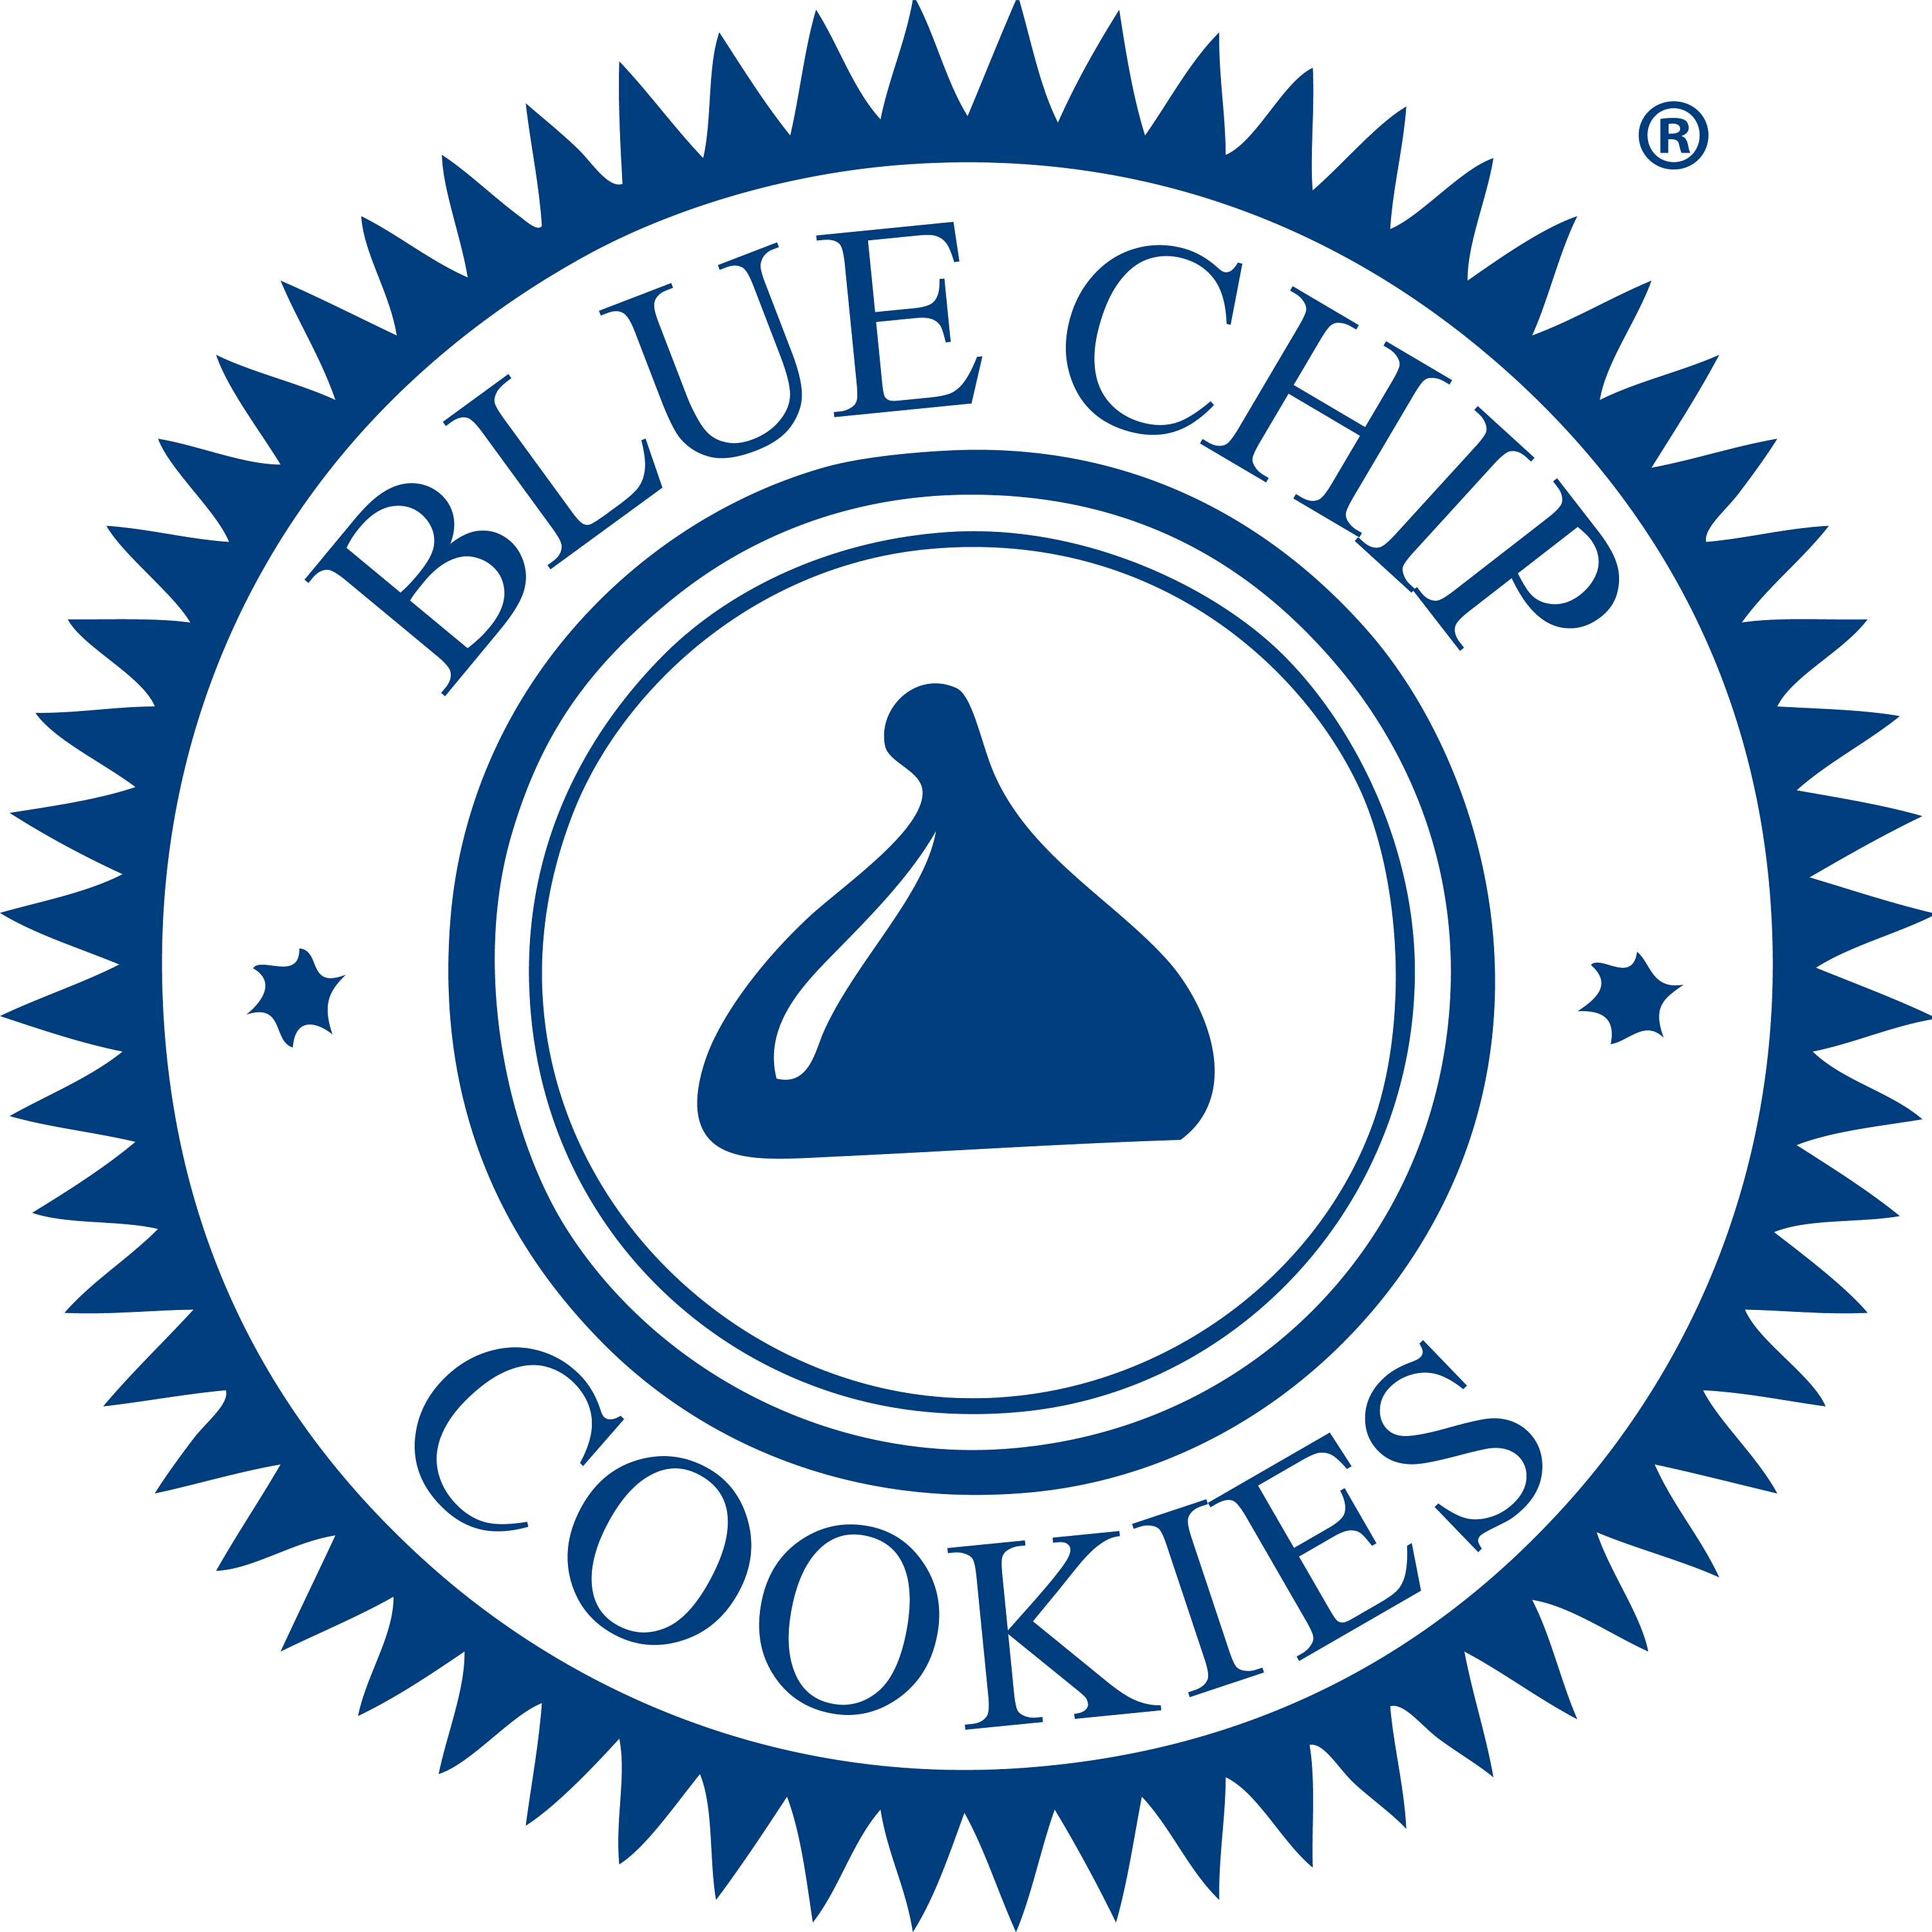 The Best Gourmet Cookies Online | Best Corporate Cookie Gifts | Best Cookies Ever